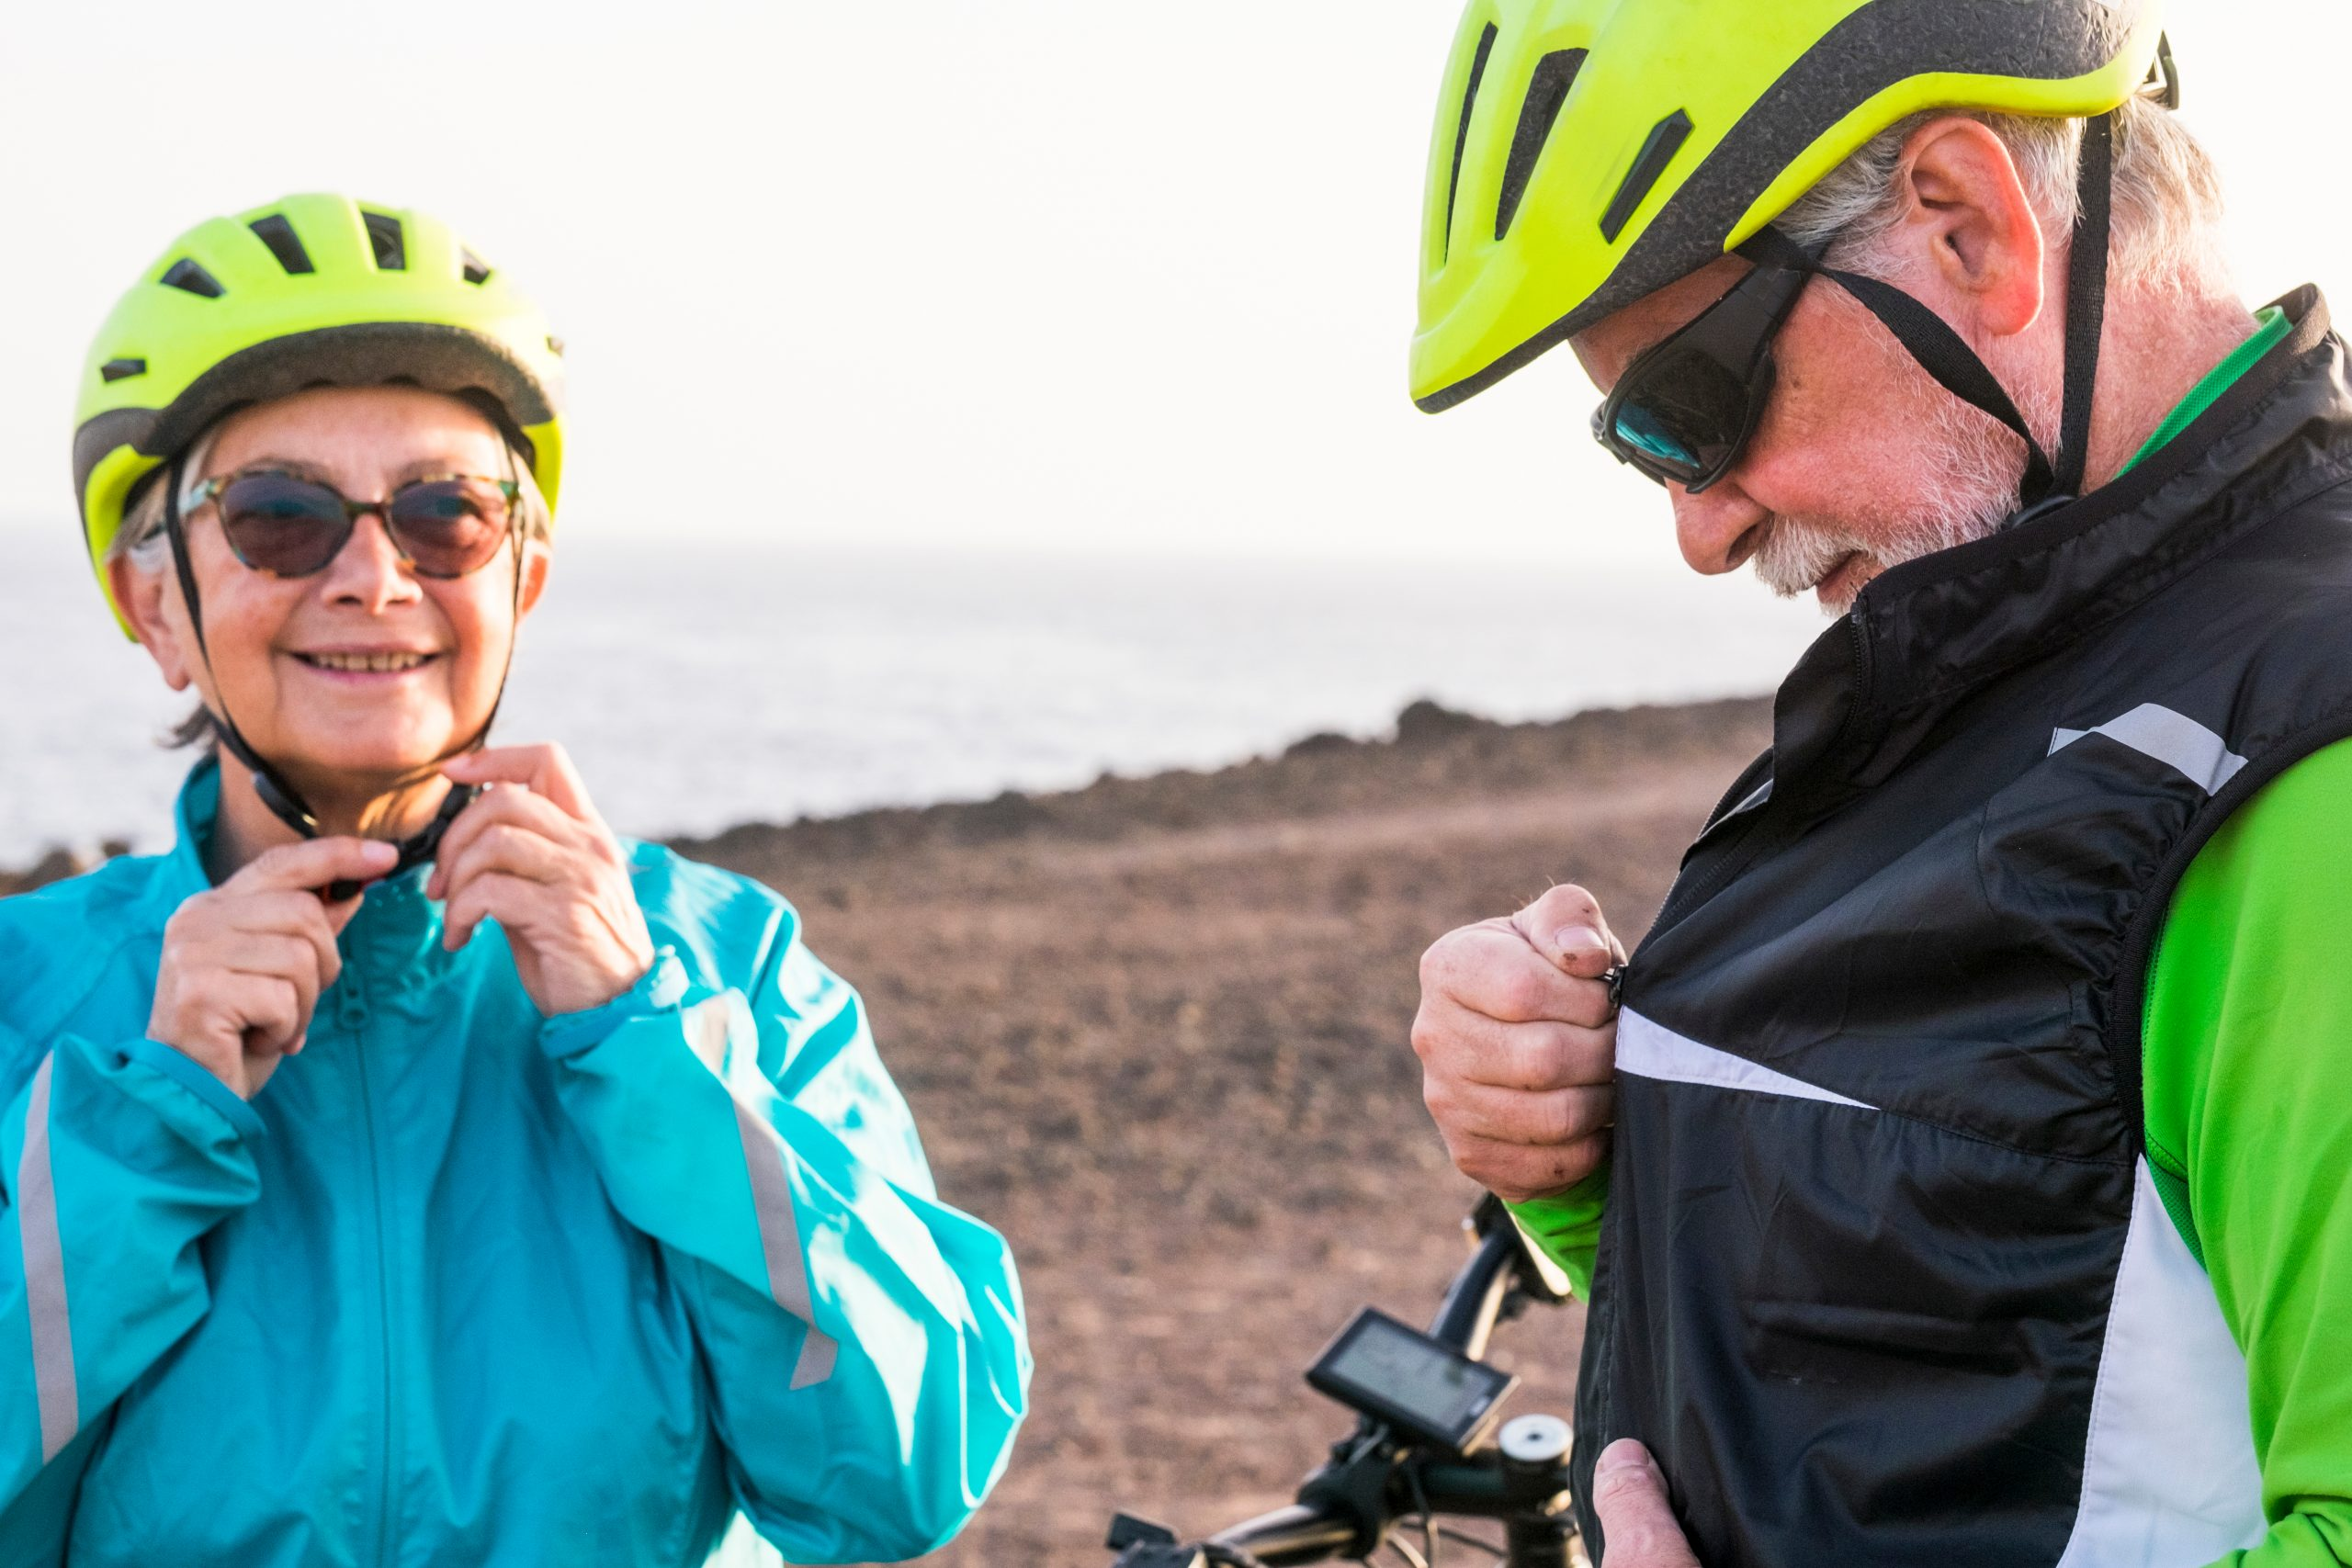 Waterproof or Breathable – Bike Jackets Explained